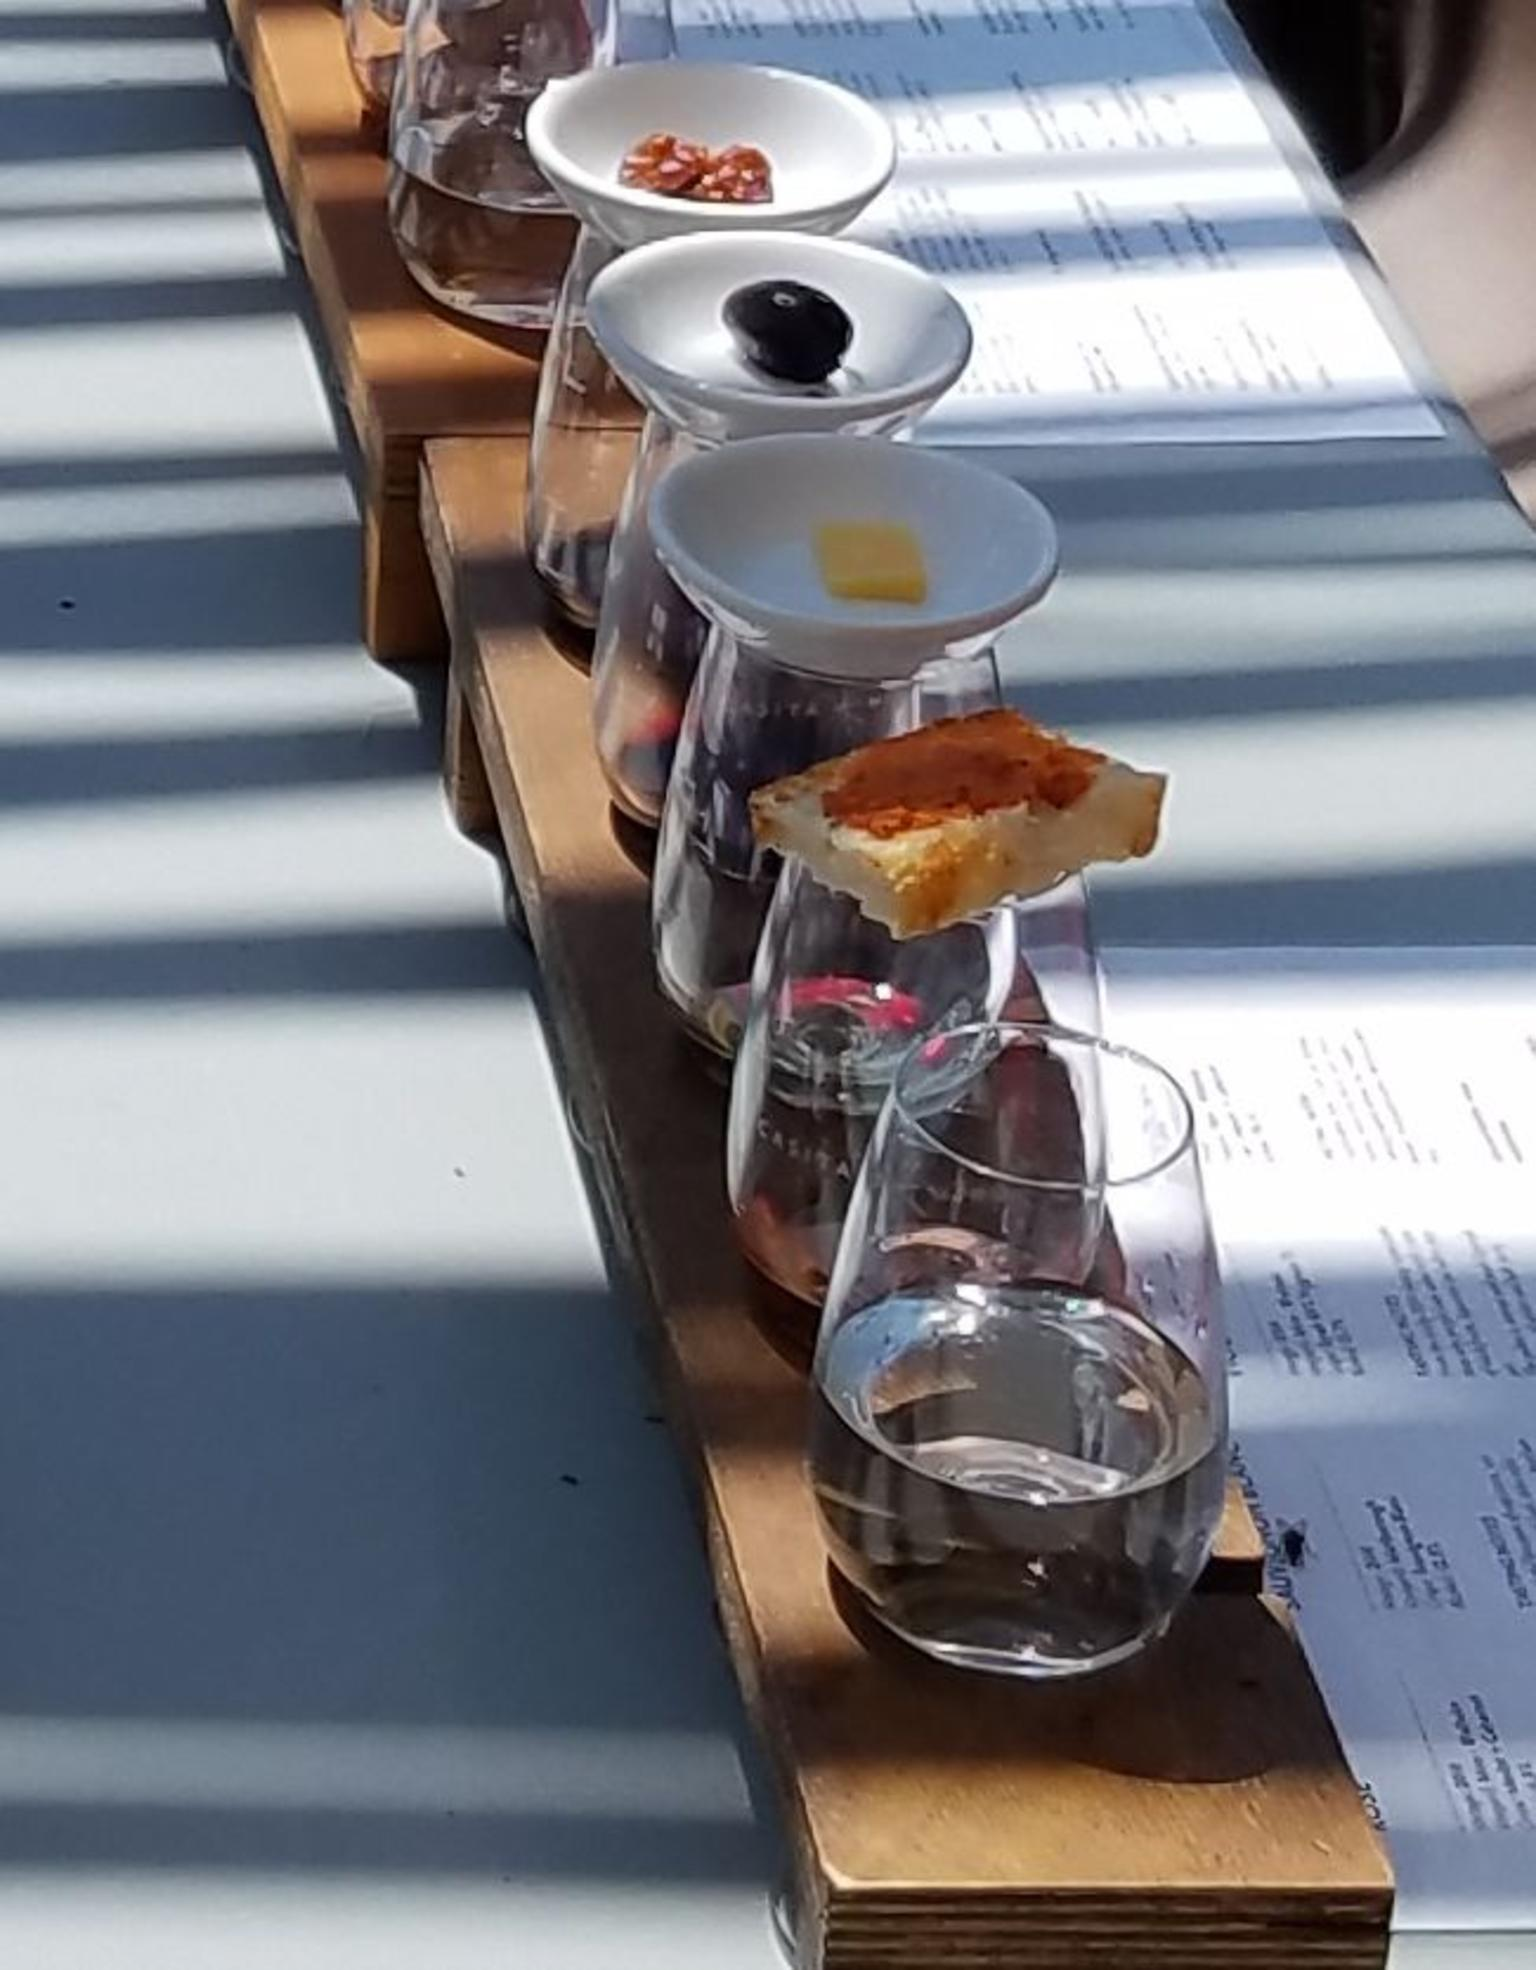 MORE PHOTOS, Food and Wine Tasting Tour of Waiheke Island from Auckland